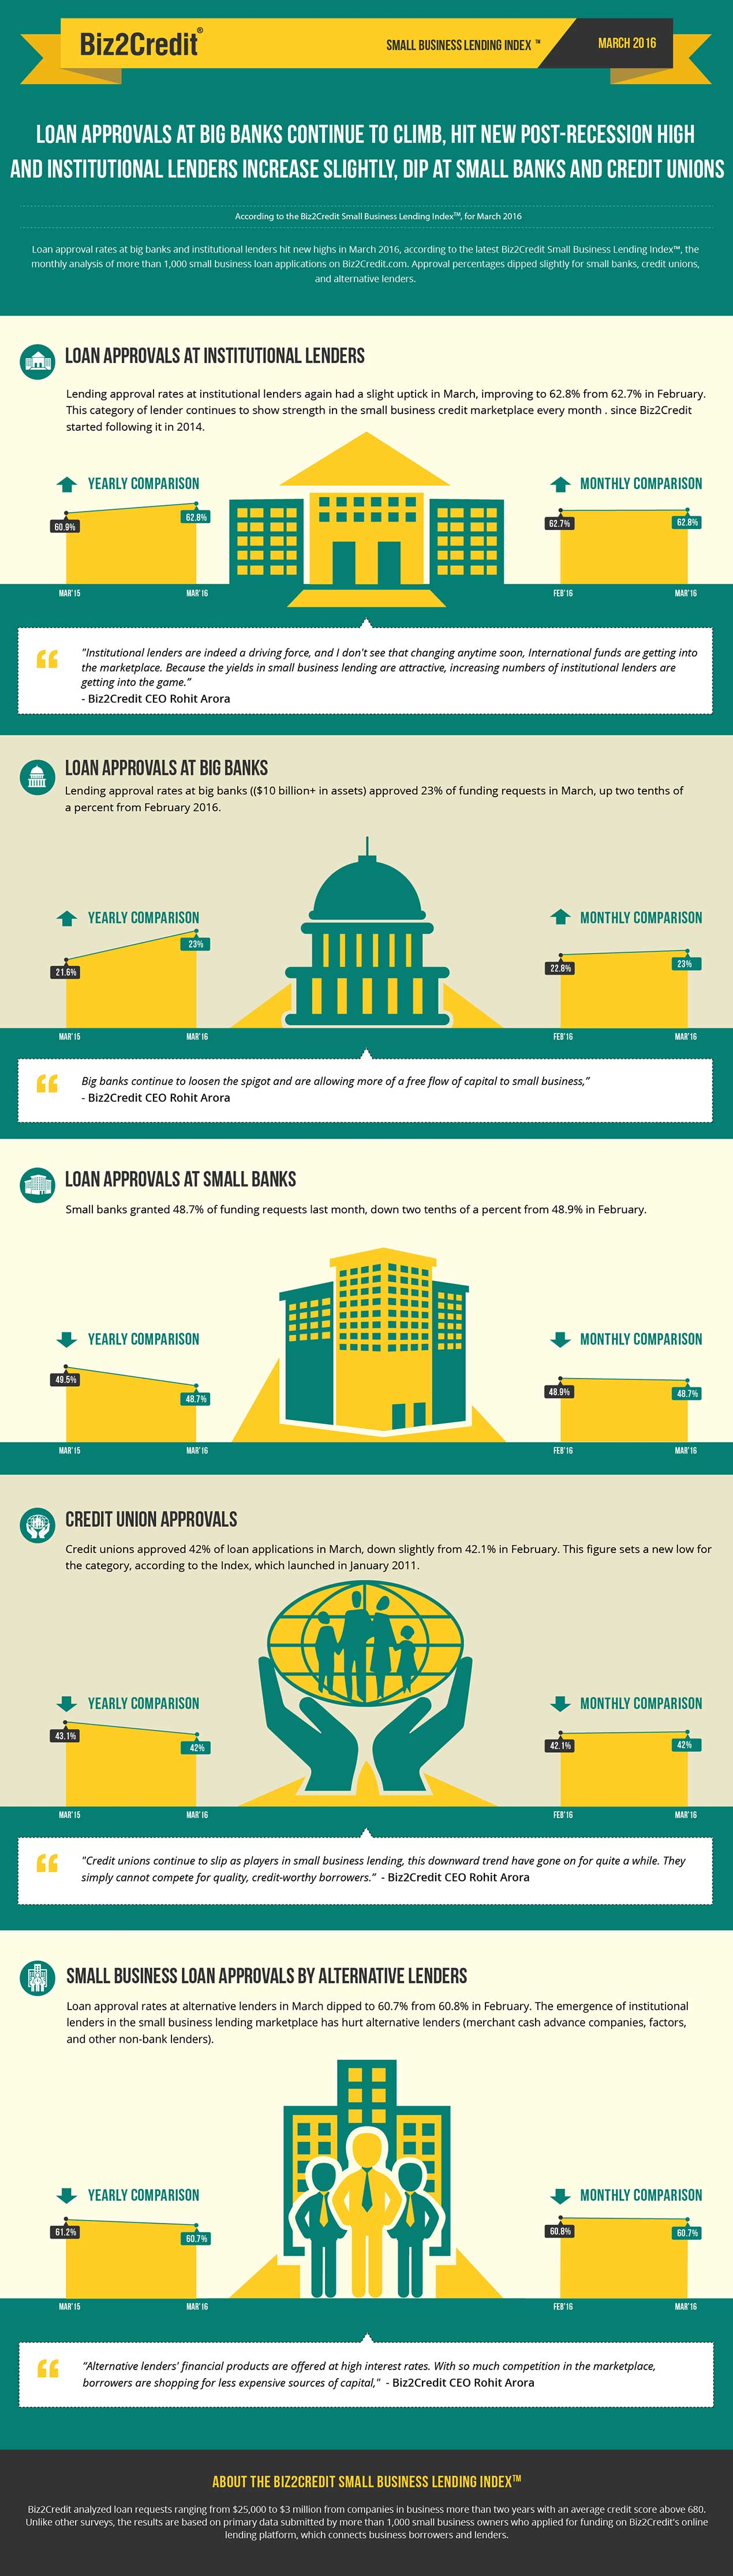 mar16 Lending Index Infographic